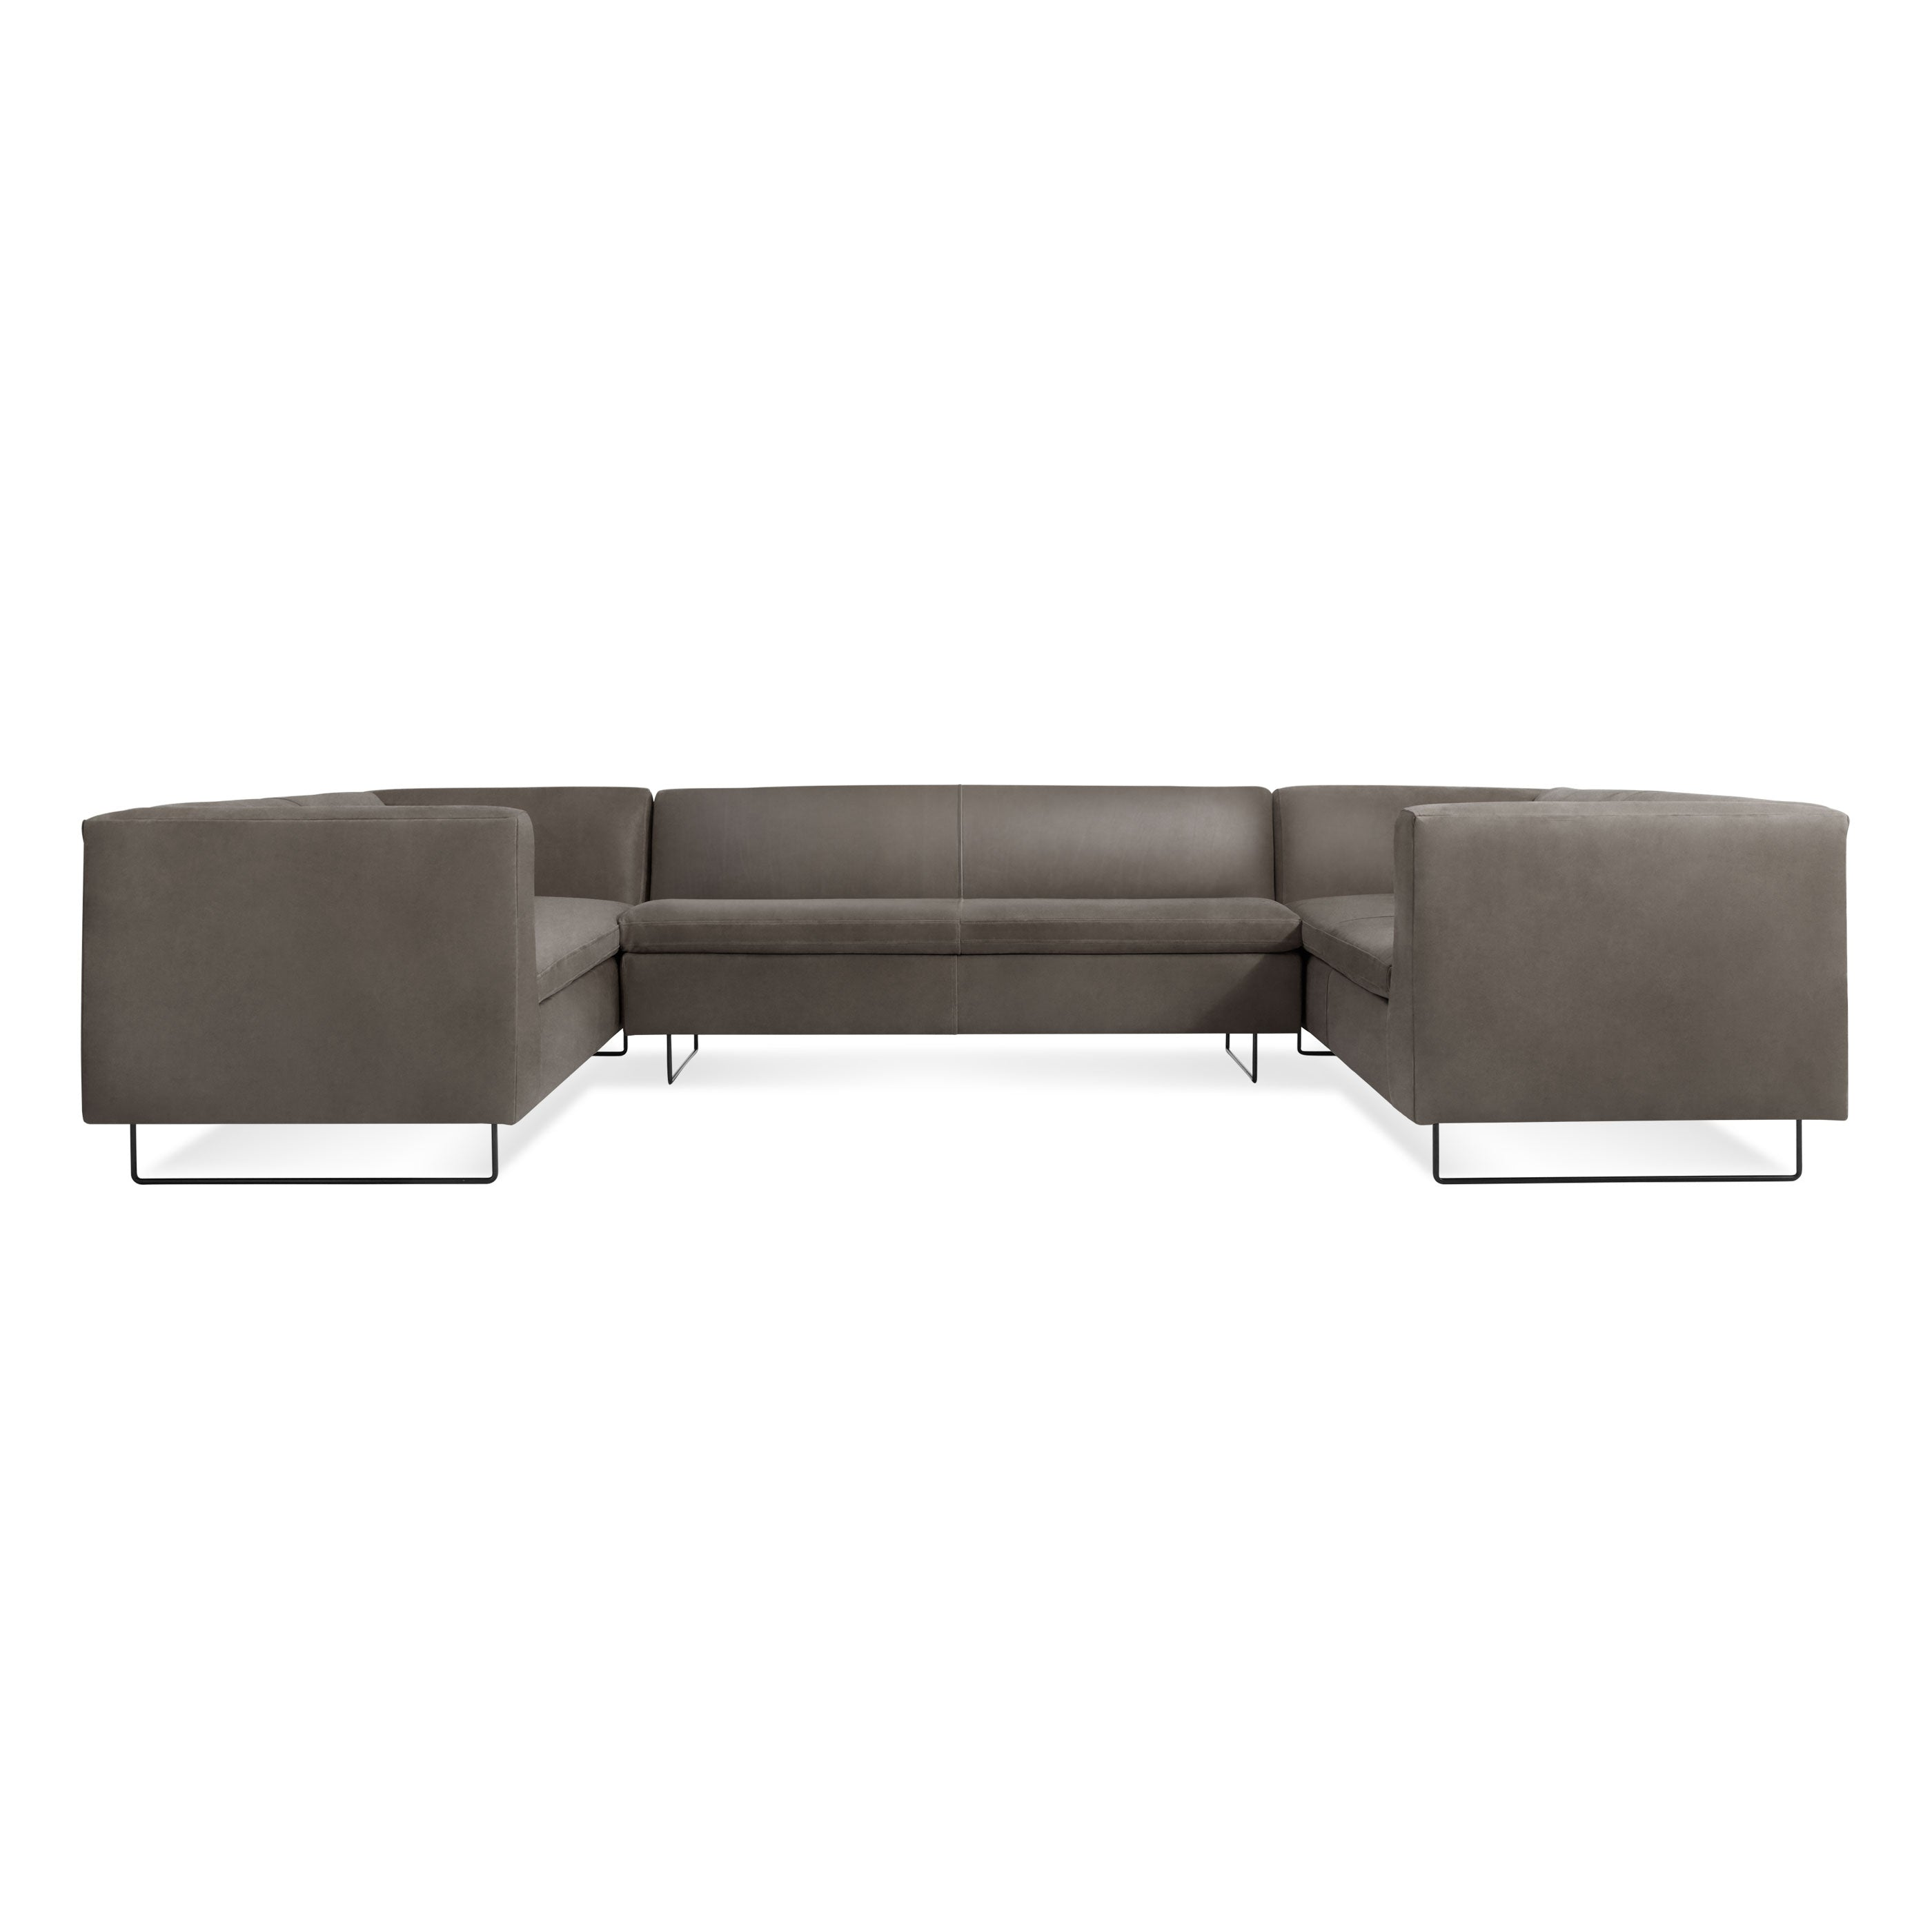 Bonnie & Clyde U-Shaped Sectional Sofa